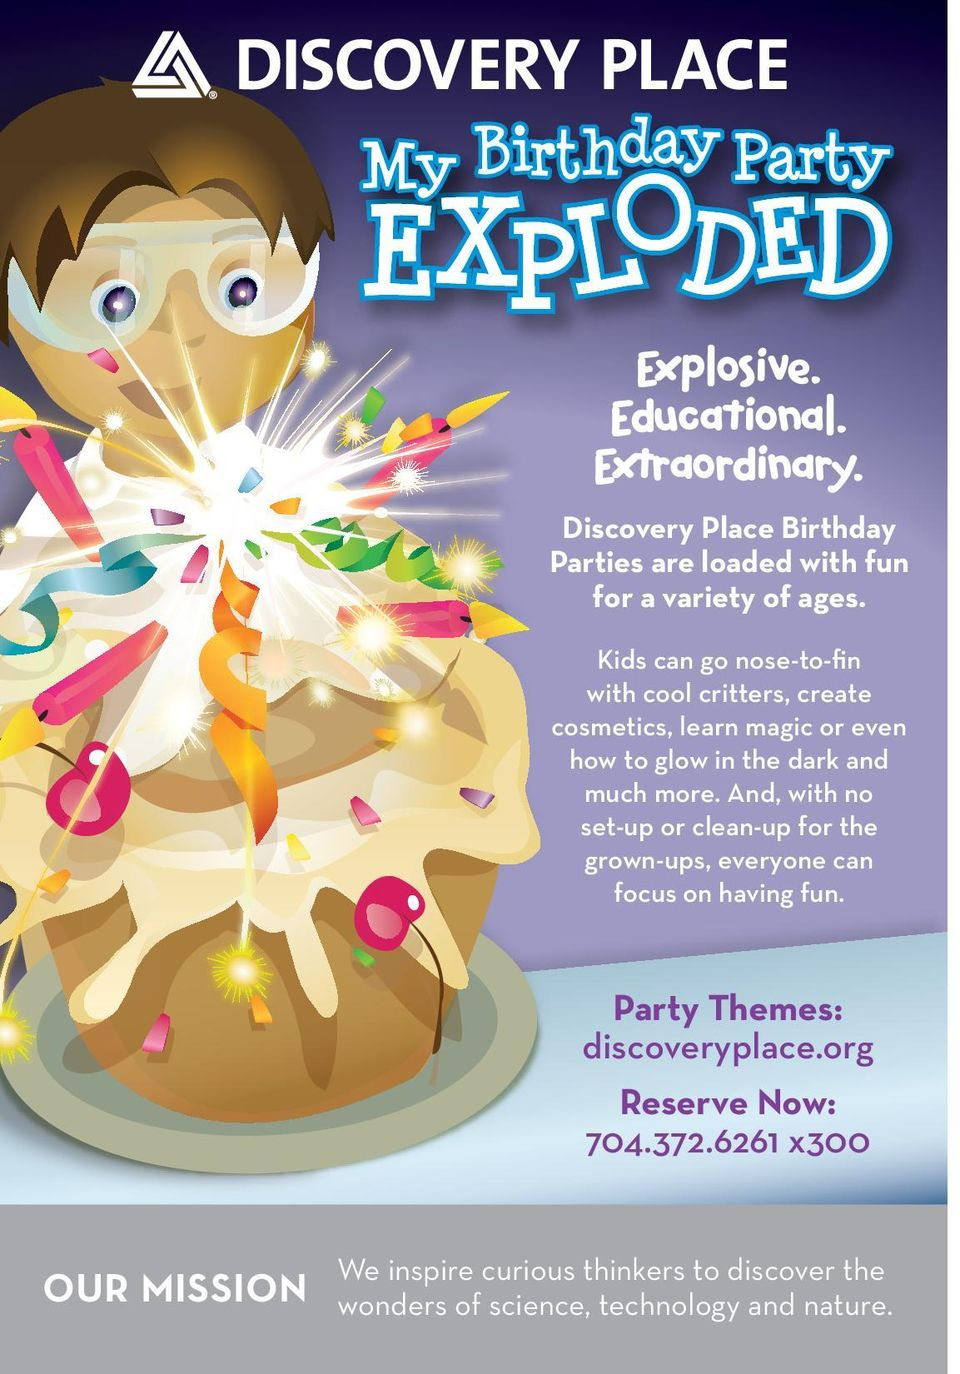 And, with no set-up or clean-up for the grown-ups, everyone can focus on having fun. Party Themes: discoveryplace.